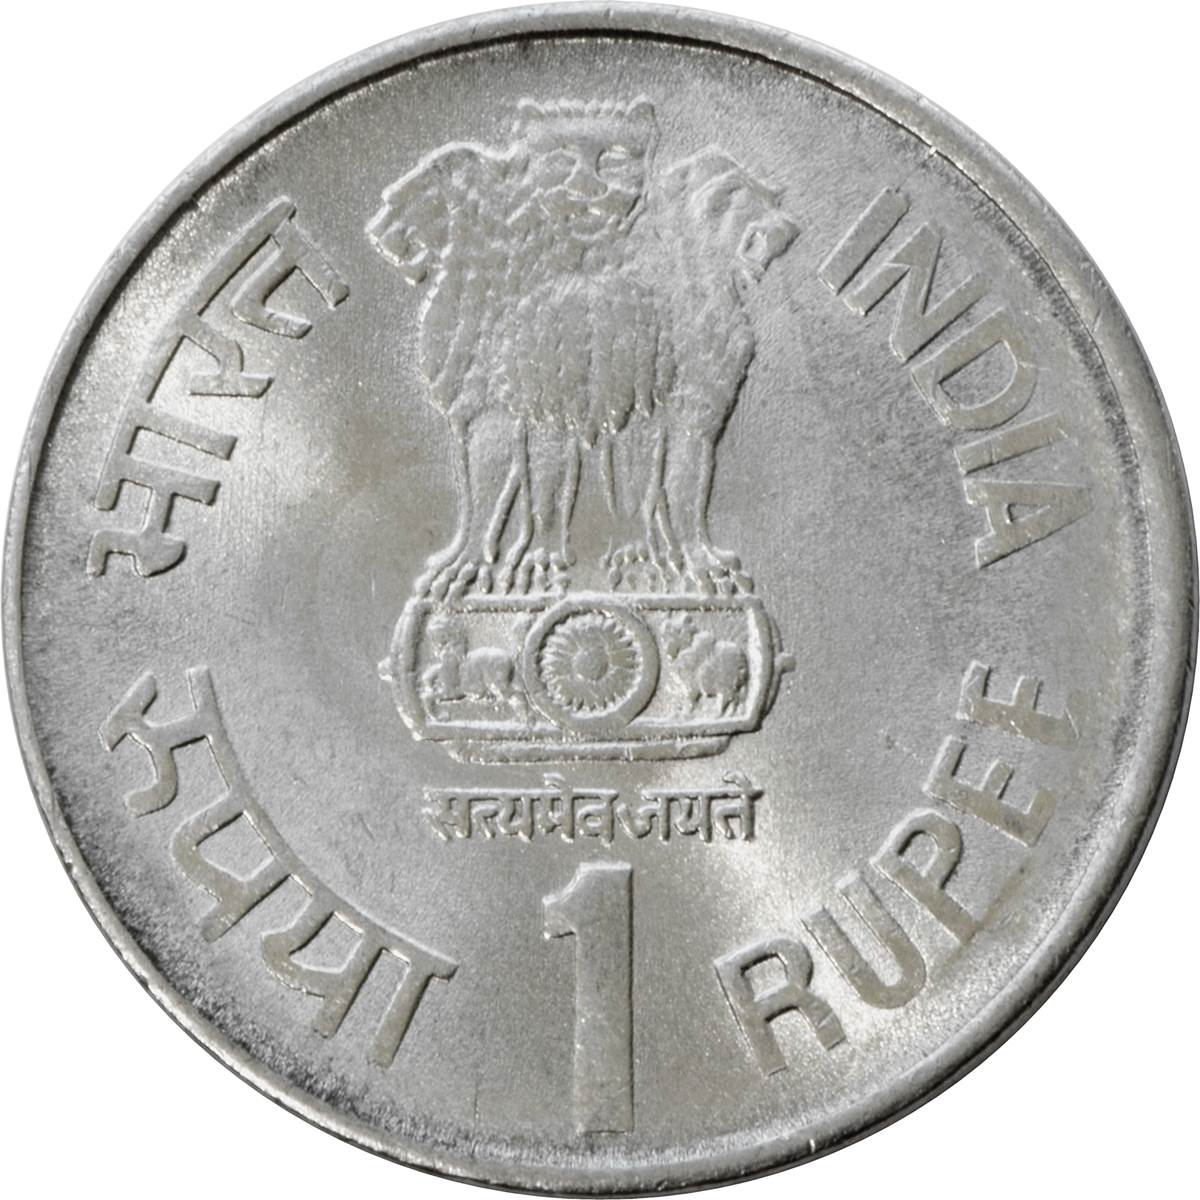 Vrp coin 2018 price in india - Cat water fountain build how to